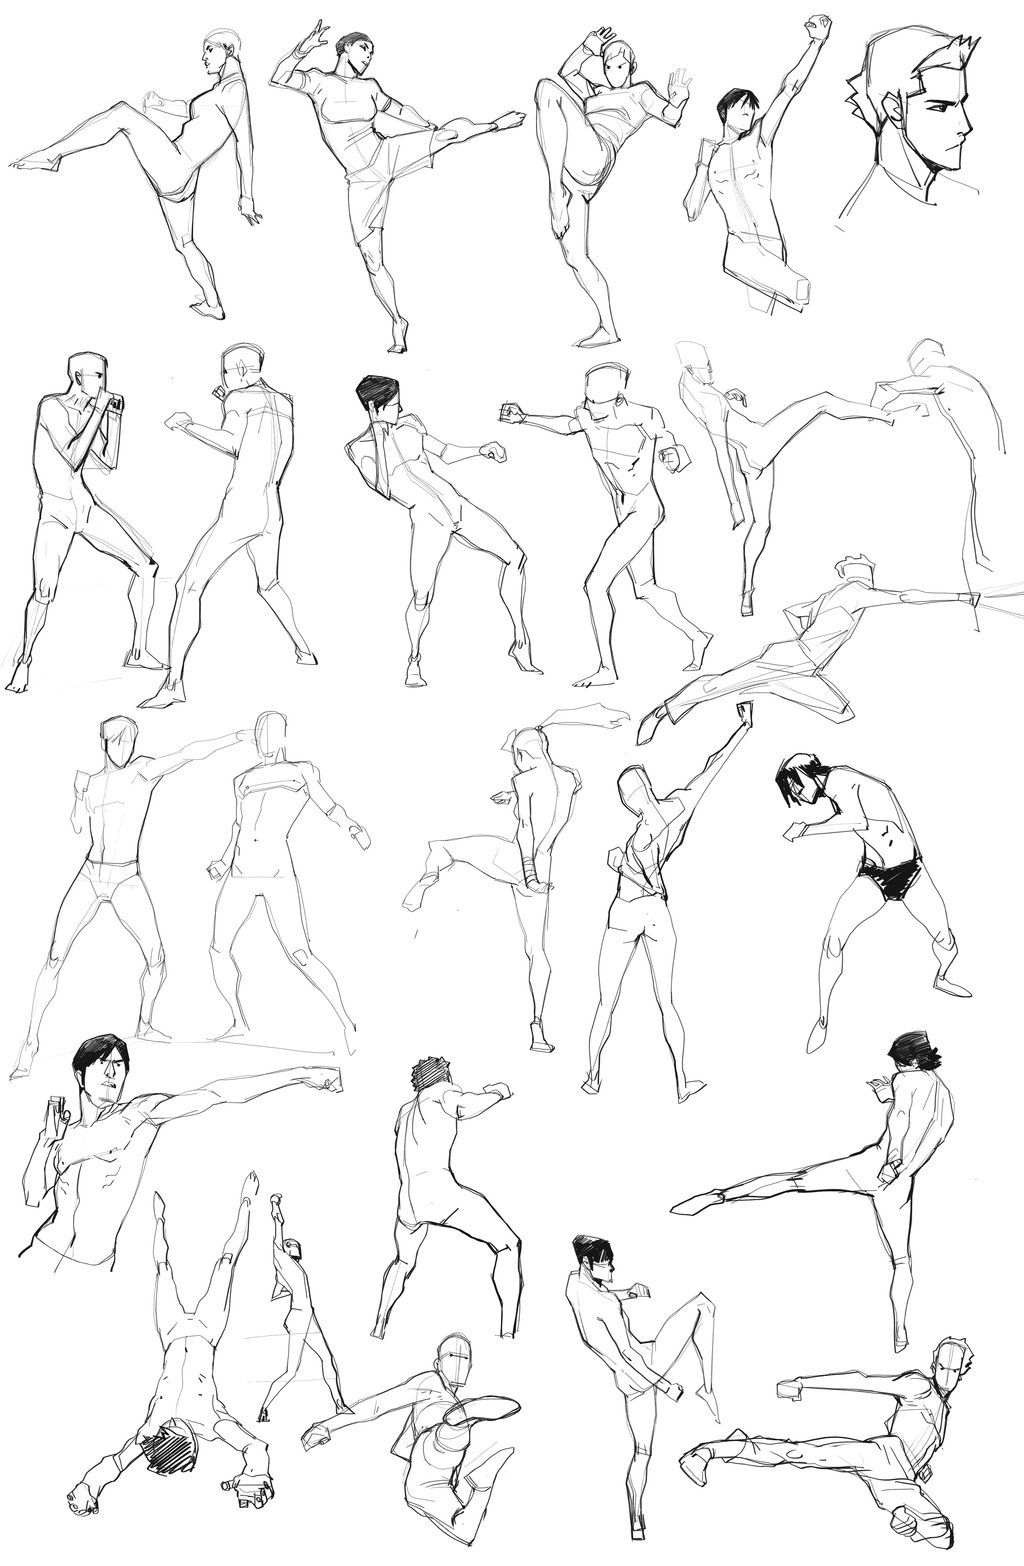 Daily Doodle 02 By Blacksataguni On Deviantart Gt Gt Action Pose Fighting Poses Reference Sheet